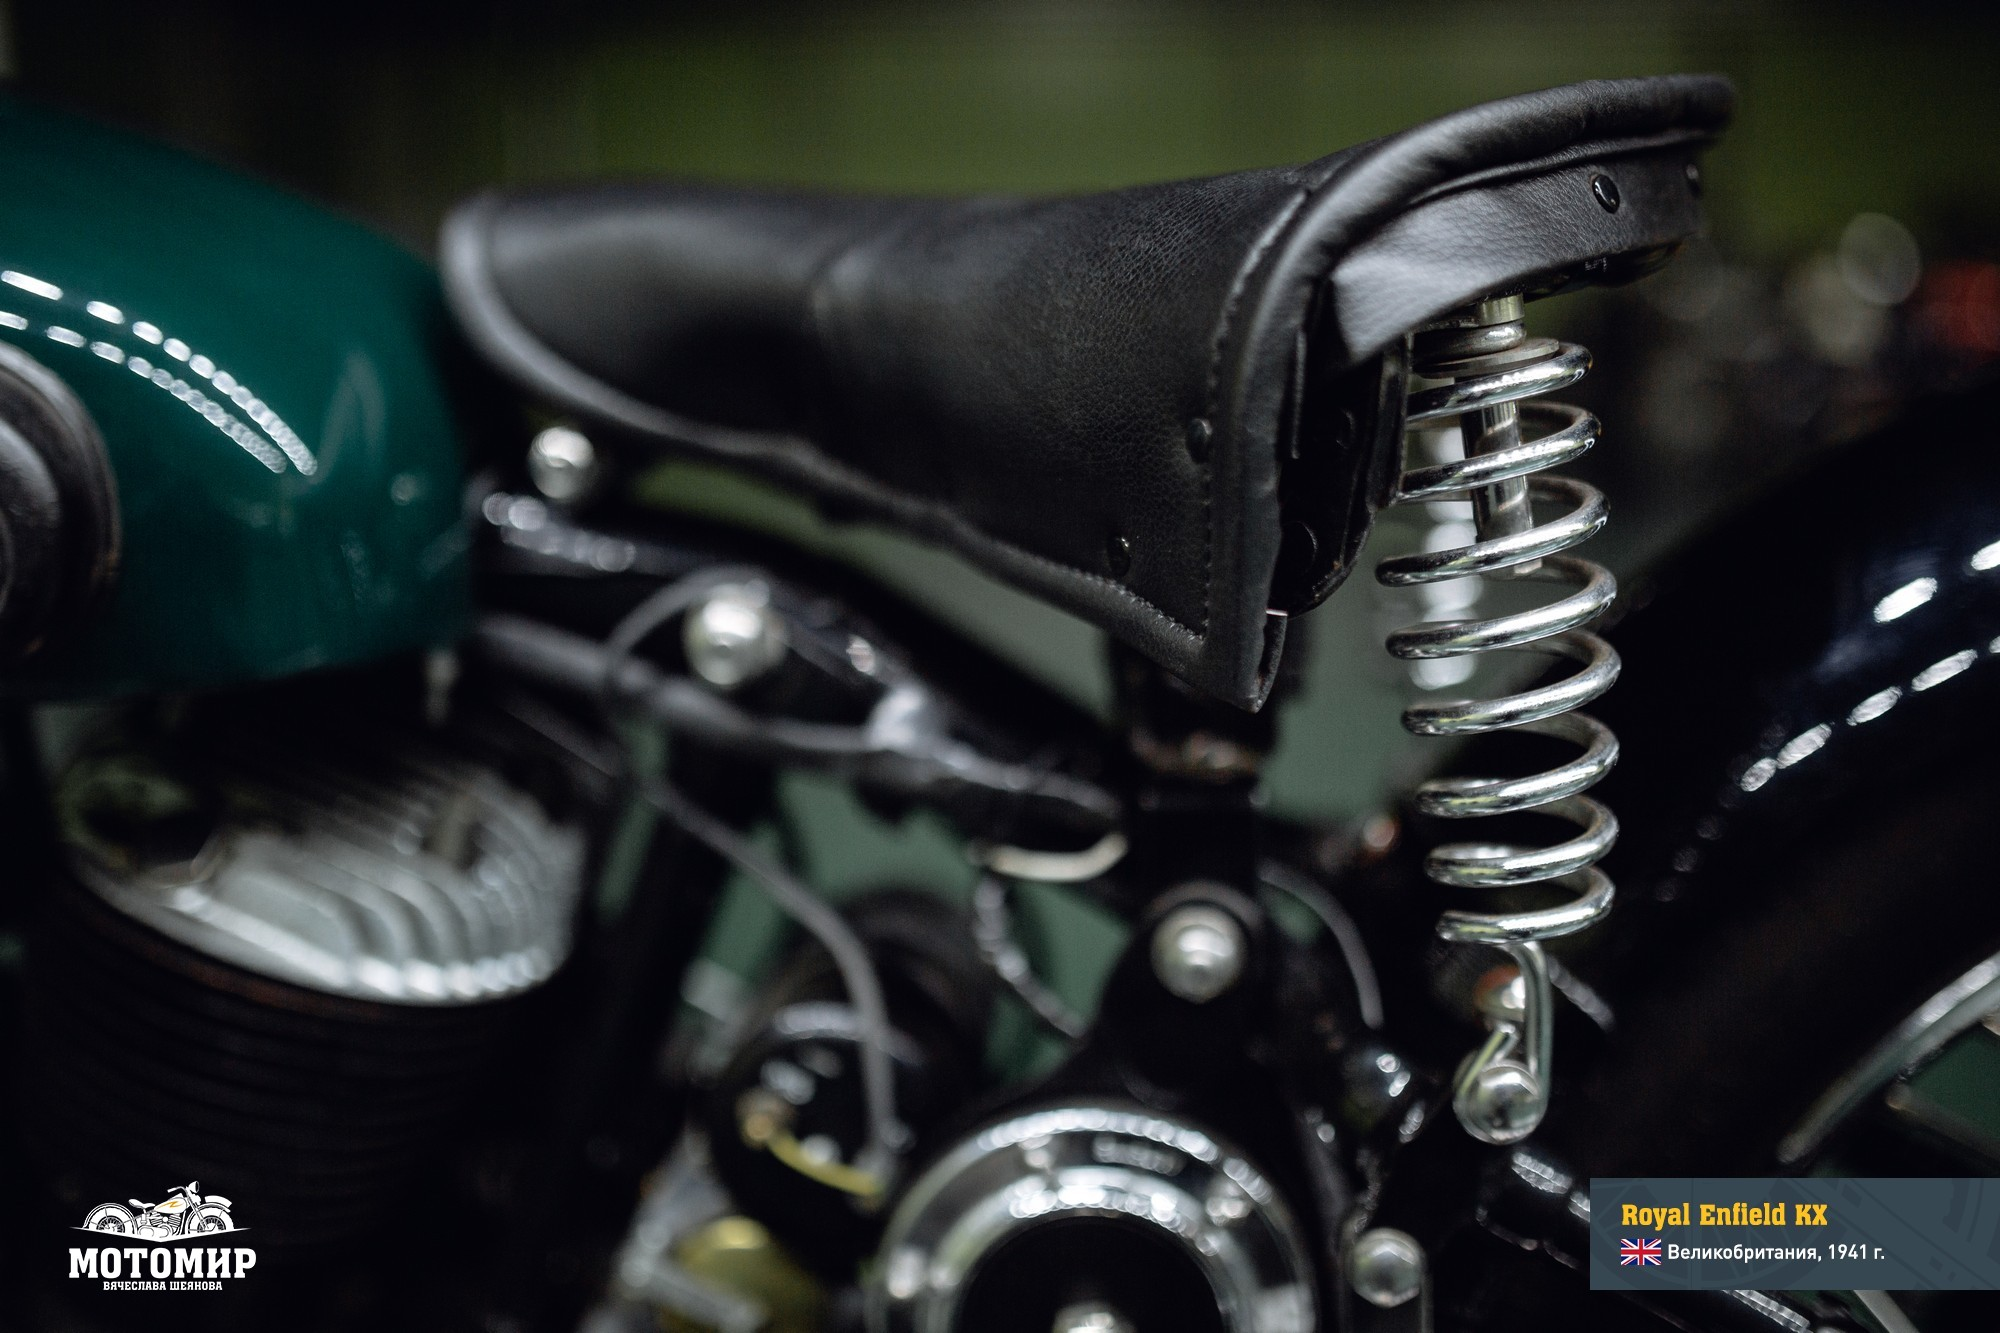 royal-enfield-kx-201601-web-28